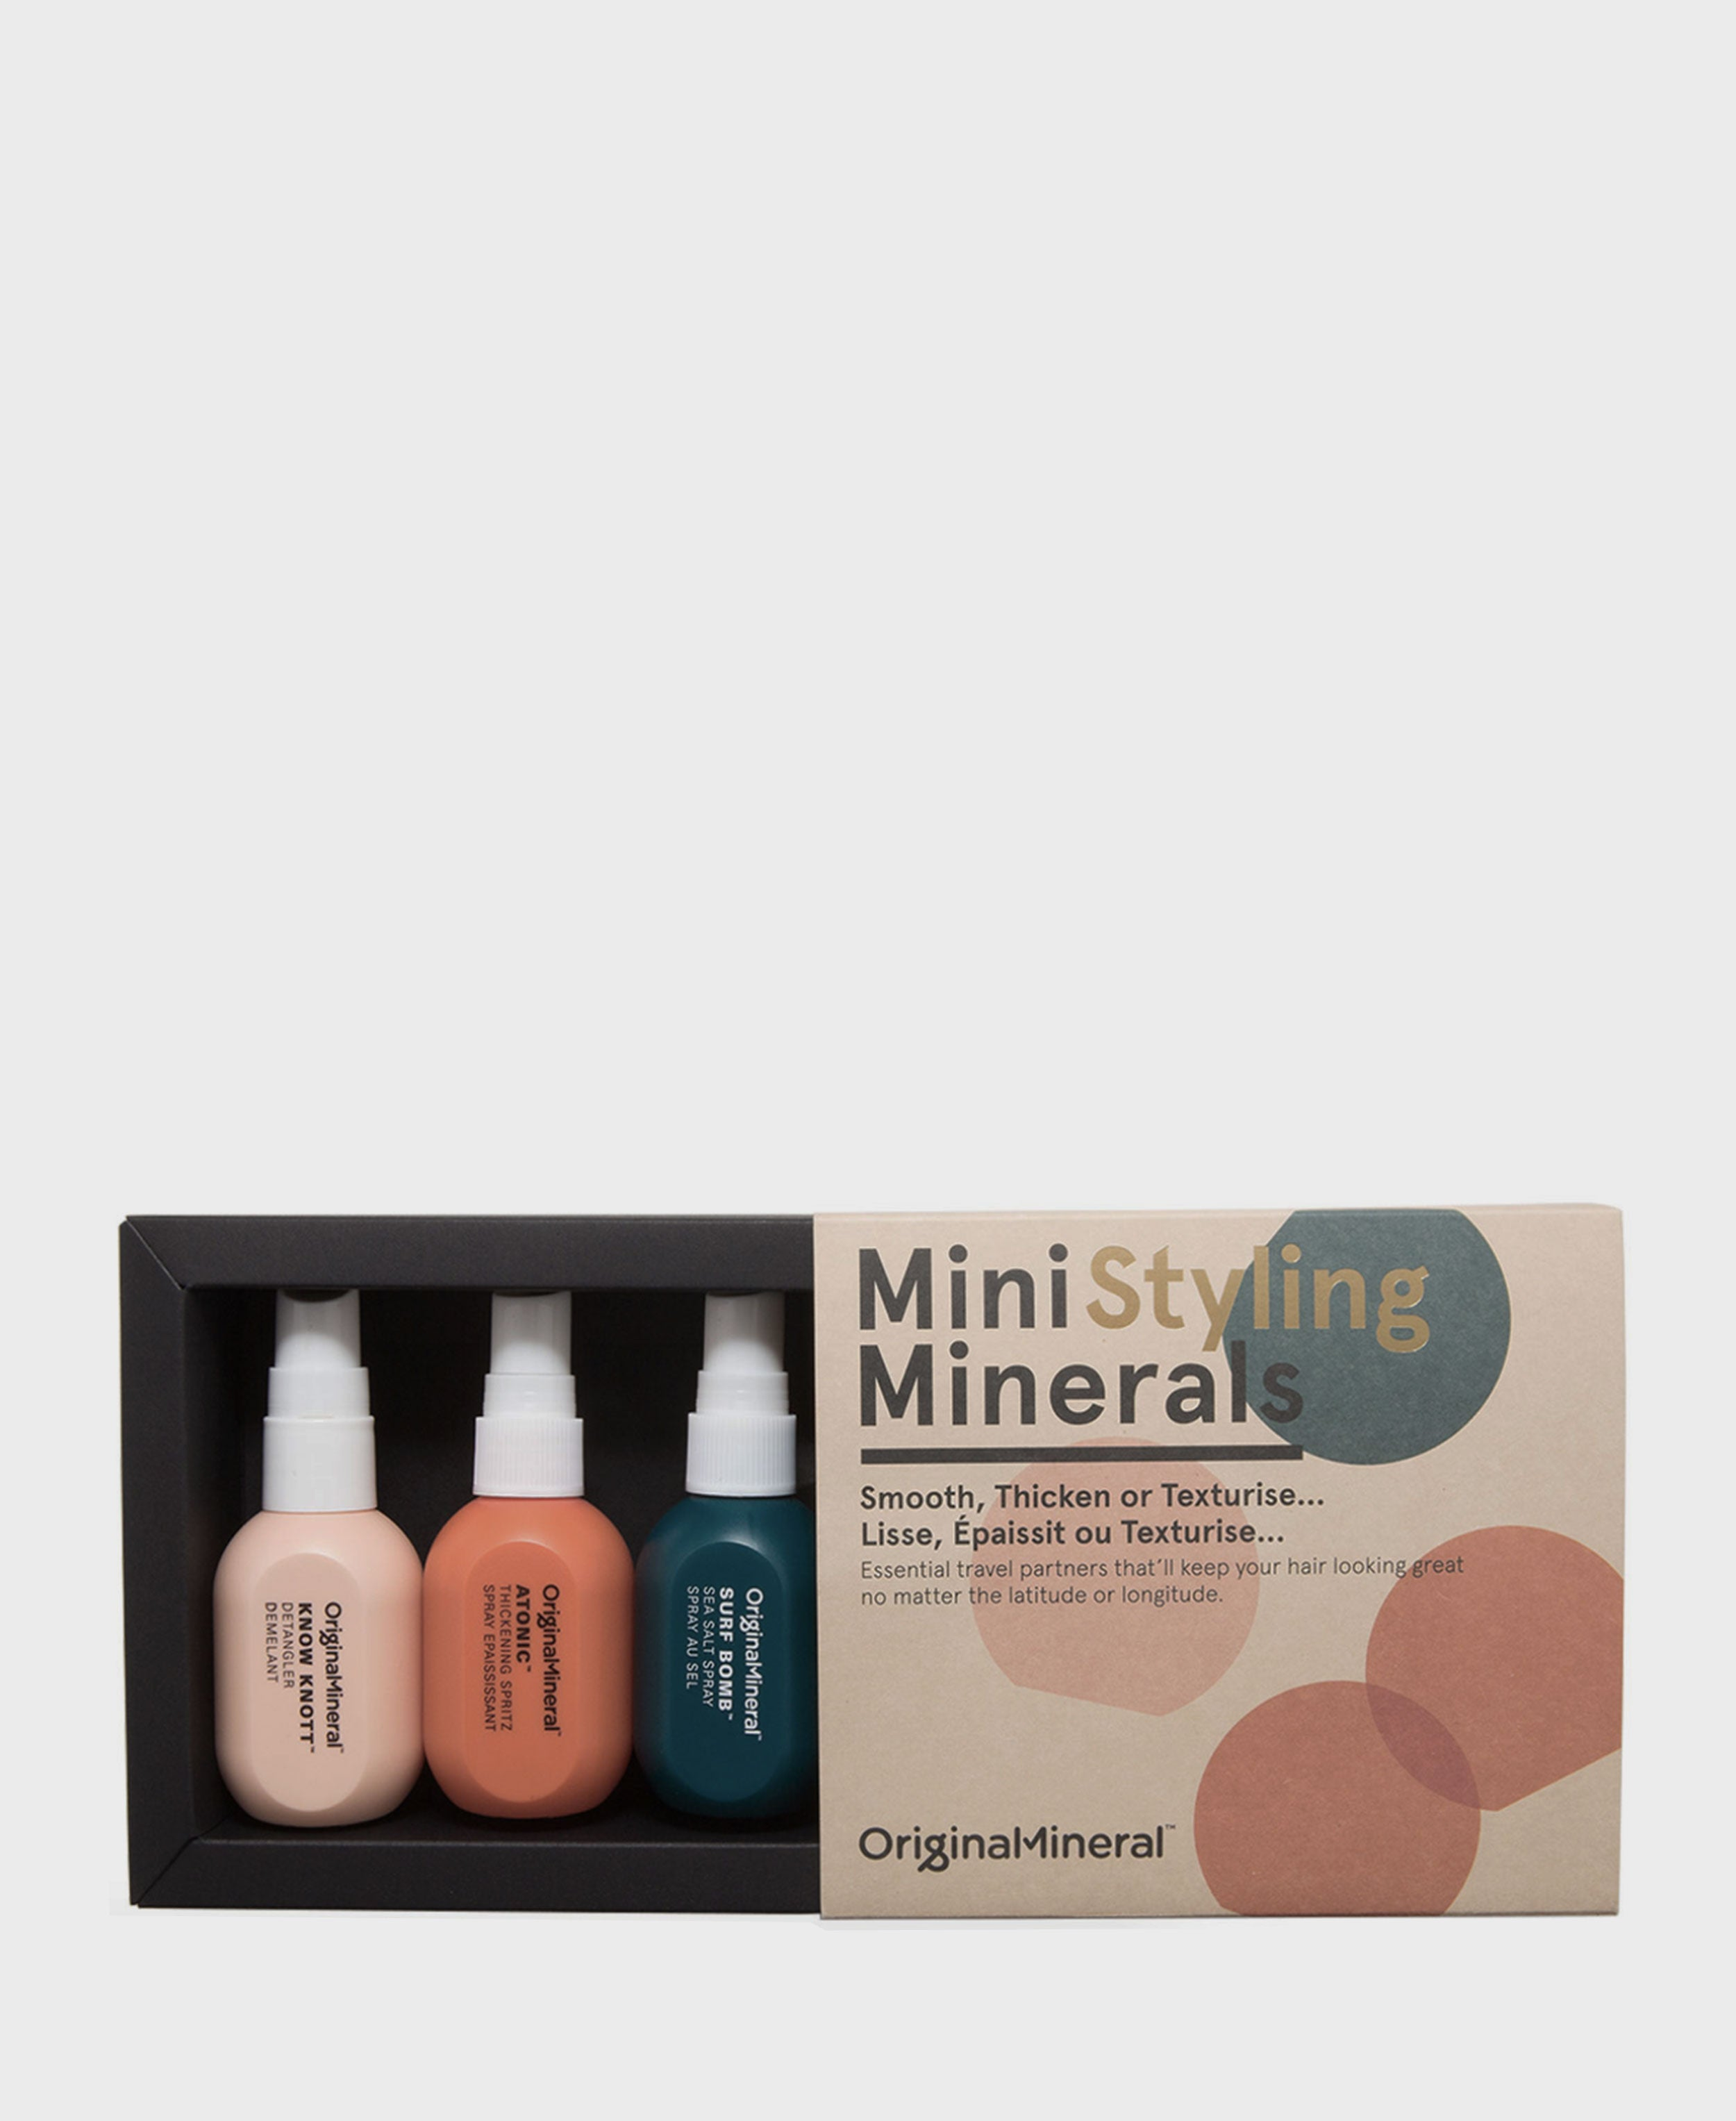 MINI STYLING MINERALS KIT